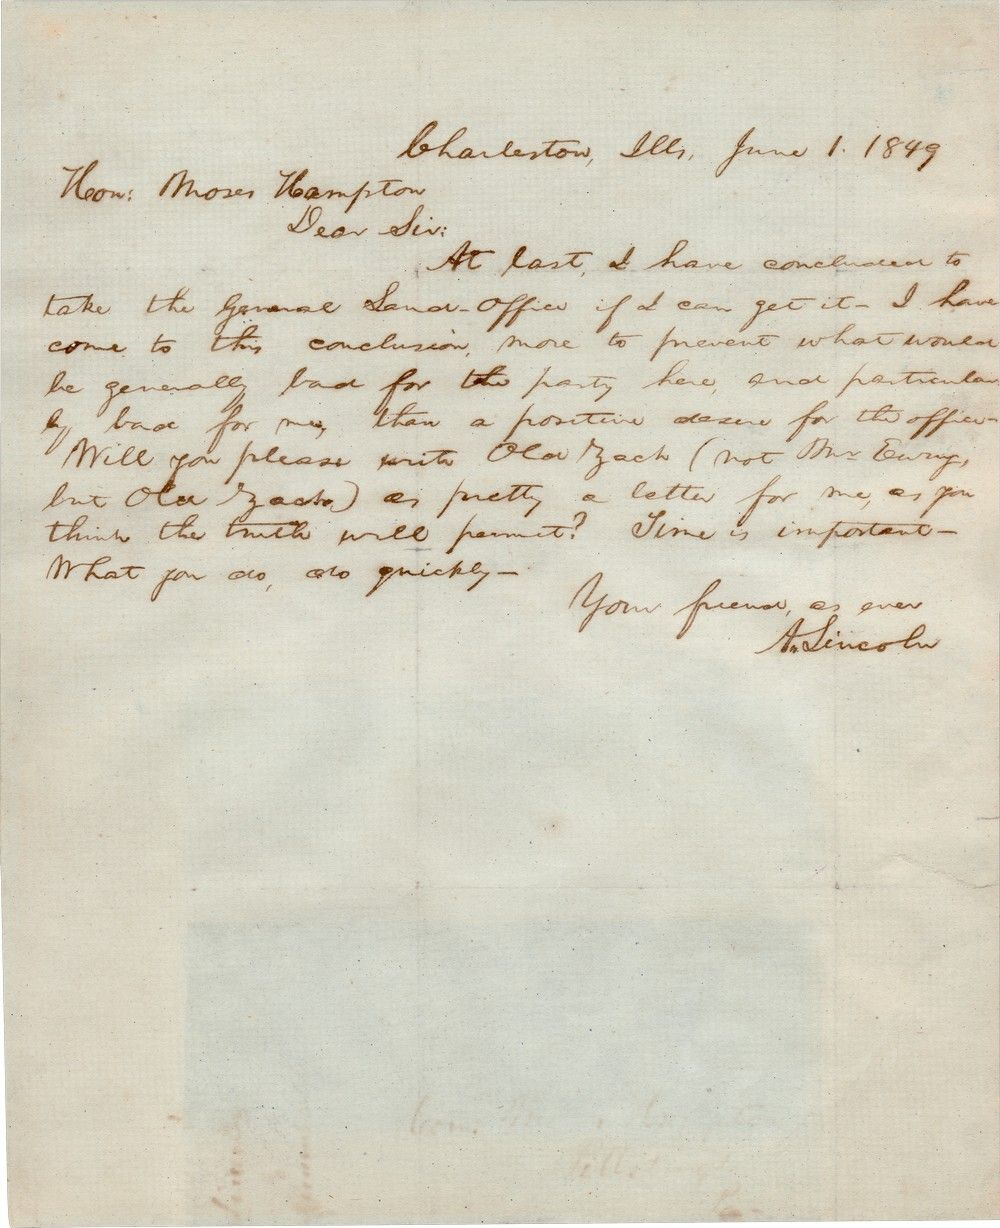 "Campaigning for General Land Office Commissioner, Lincoln Asks Congressman to Write to ""Old Zach"" About Him"